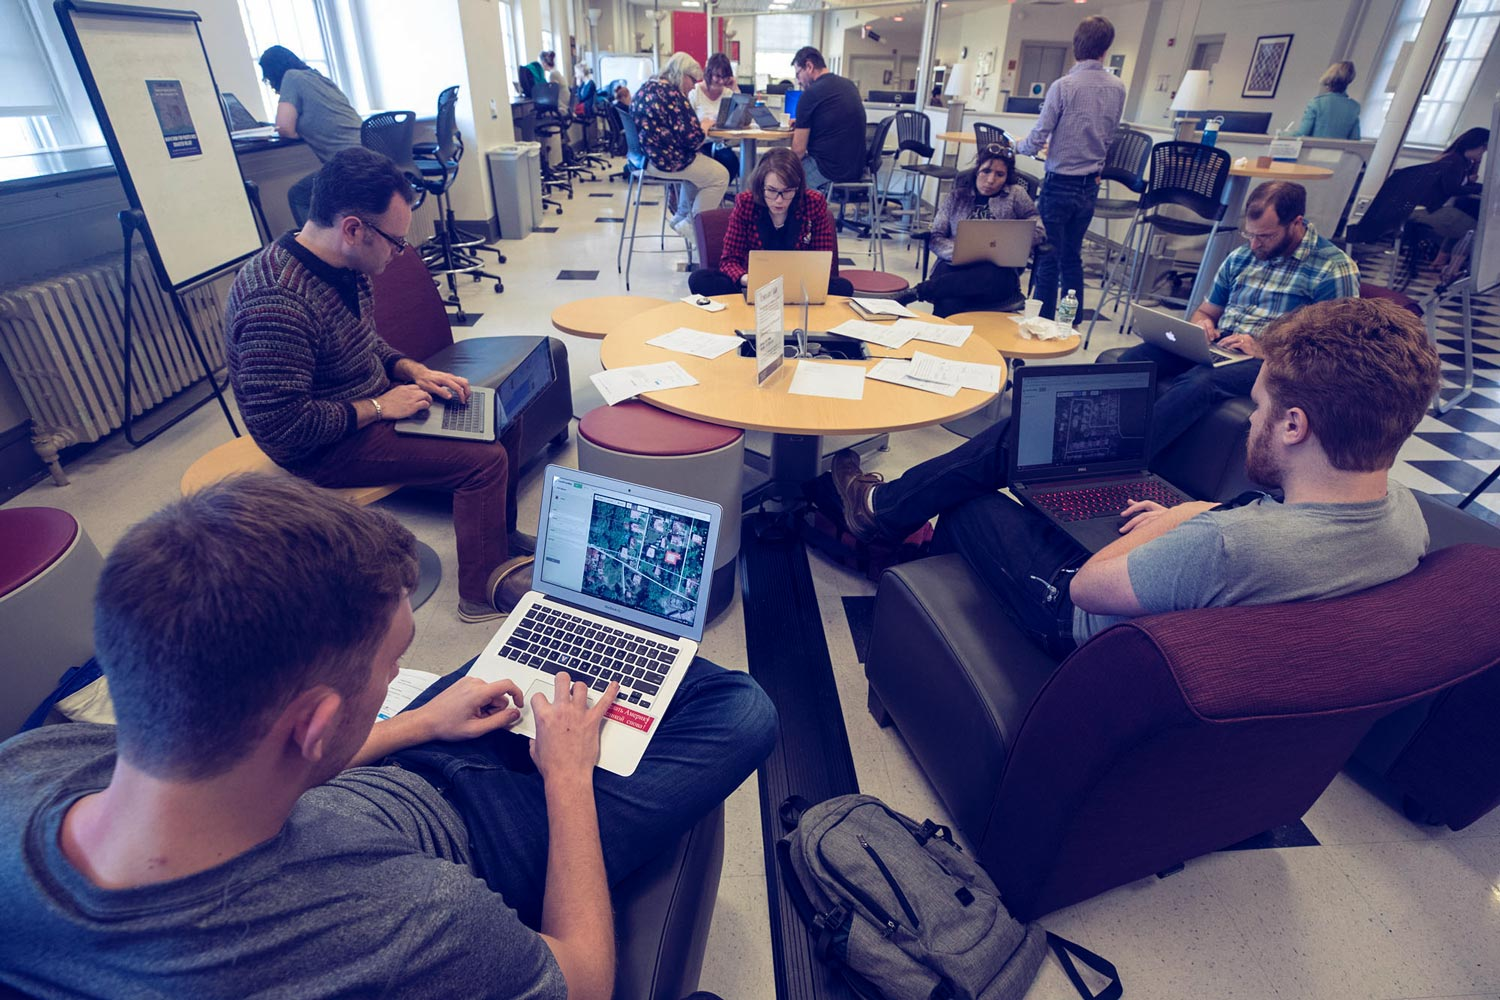 Students and faculty members worked in small groups on Thursday, updating maps to reflect the current state of buildings and bridges in Puerto Rico.